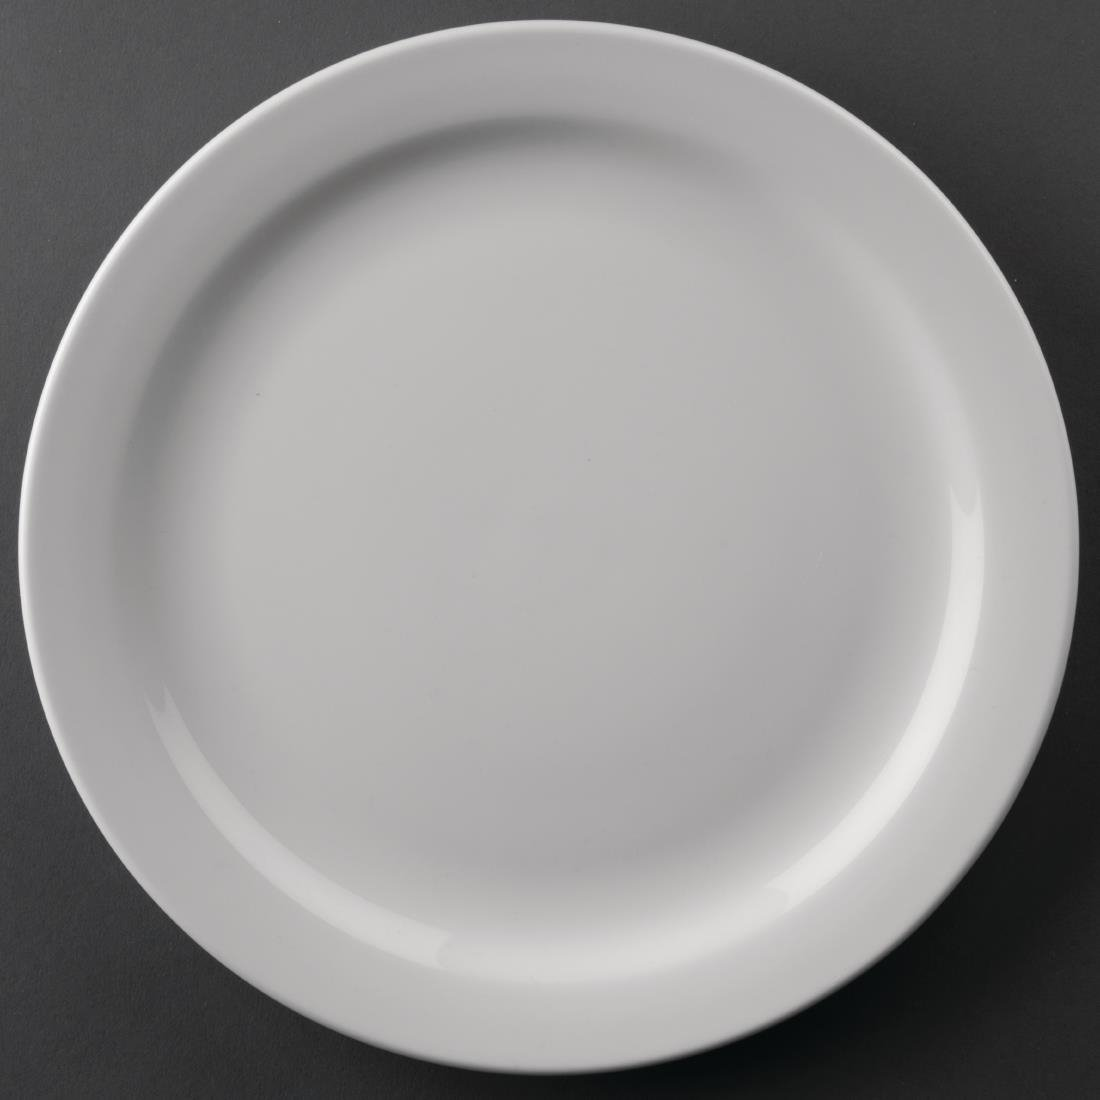 Image of Athena Hotelware Narrow Rimmed Plates 226mm (Pack of 12) Pack of 12